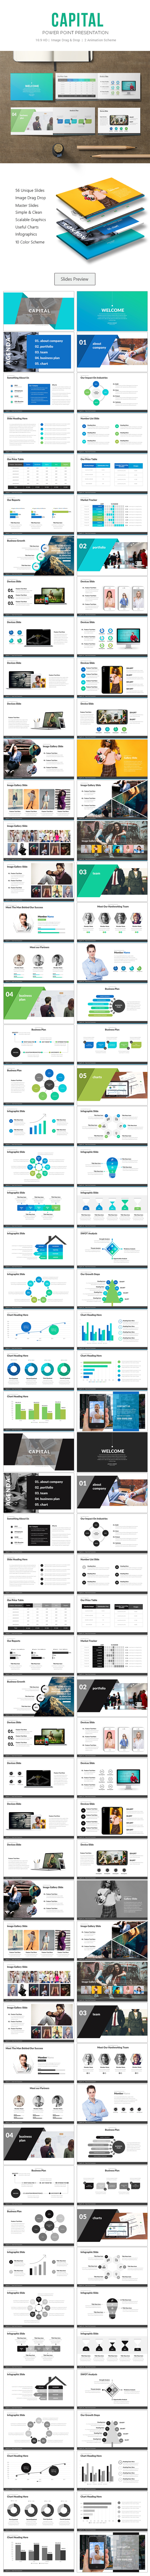 Capital Power Point Presentation Template - Business PowerPoint Templates